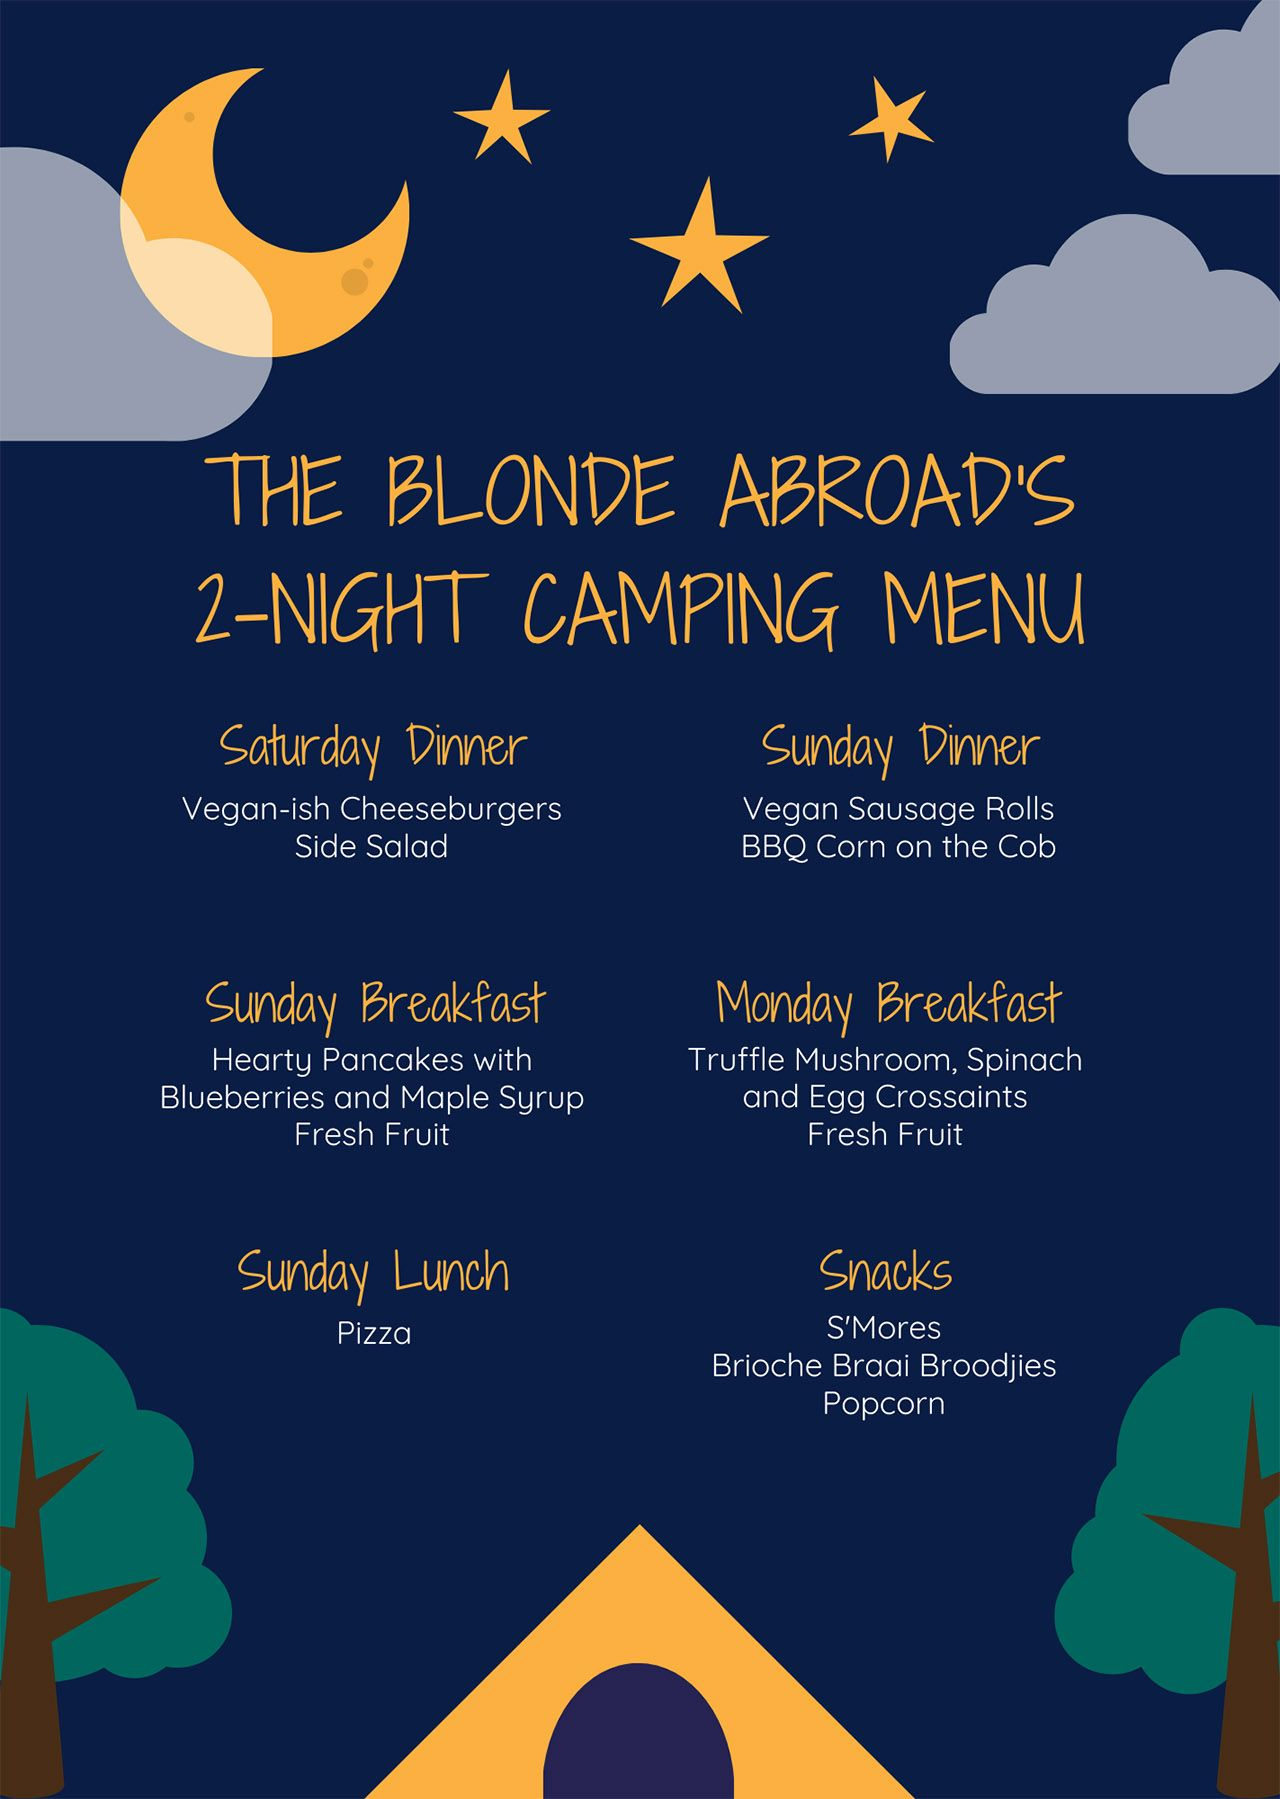 The Ultimate Camping Meal Plan Packing List The Blonde Abroad Camping Meal Planning Camping Meals Weekend Camping Trip